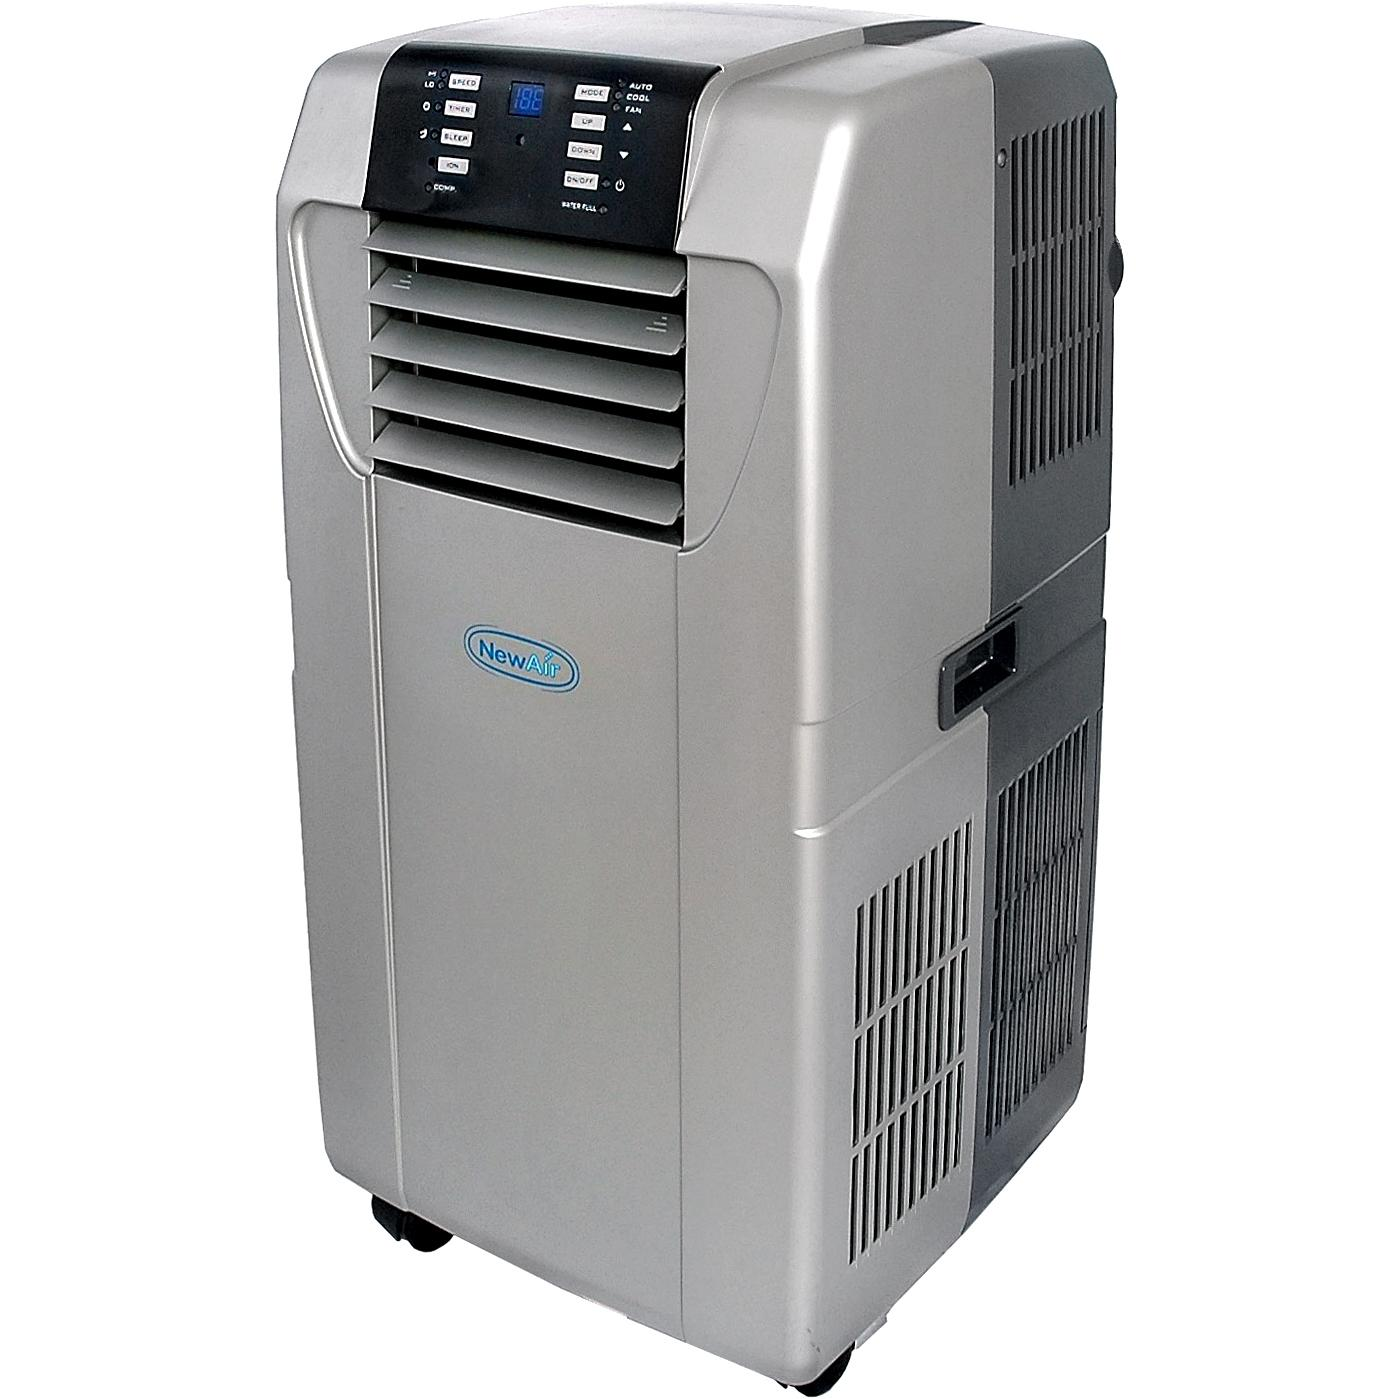 NewAir 12000 BTU Portable Air Conditioner And Heater- AC-12000H 2885858